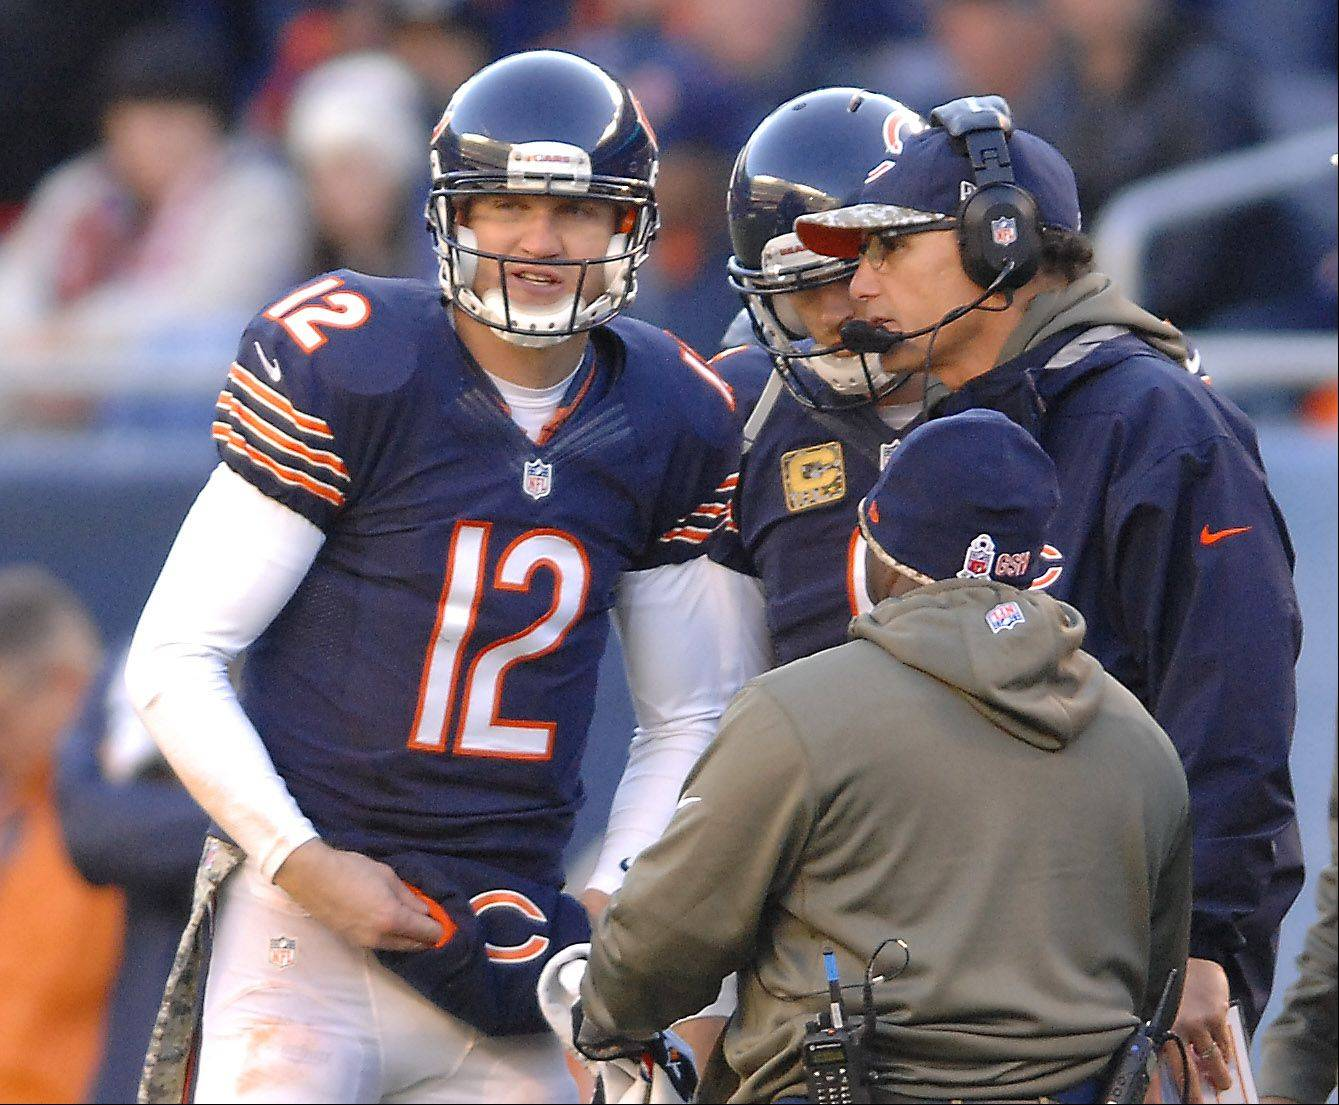 Chicago Bears quarterbacks Josh McCown (12) talks with an injured Jay Cutler and head coach Marc Trestman on the Bears final drive during Sunday's game in Chicago.